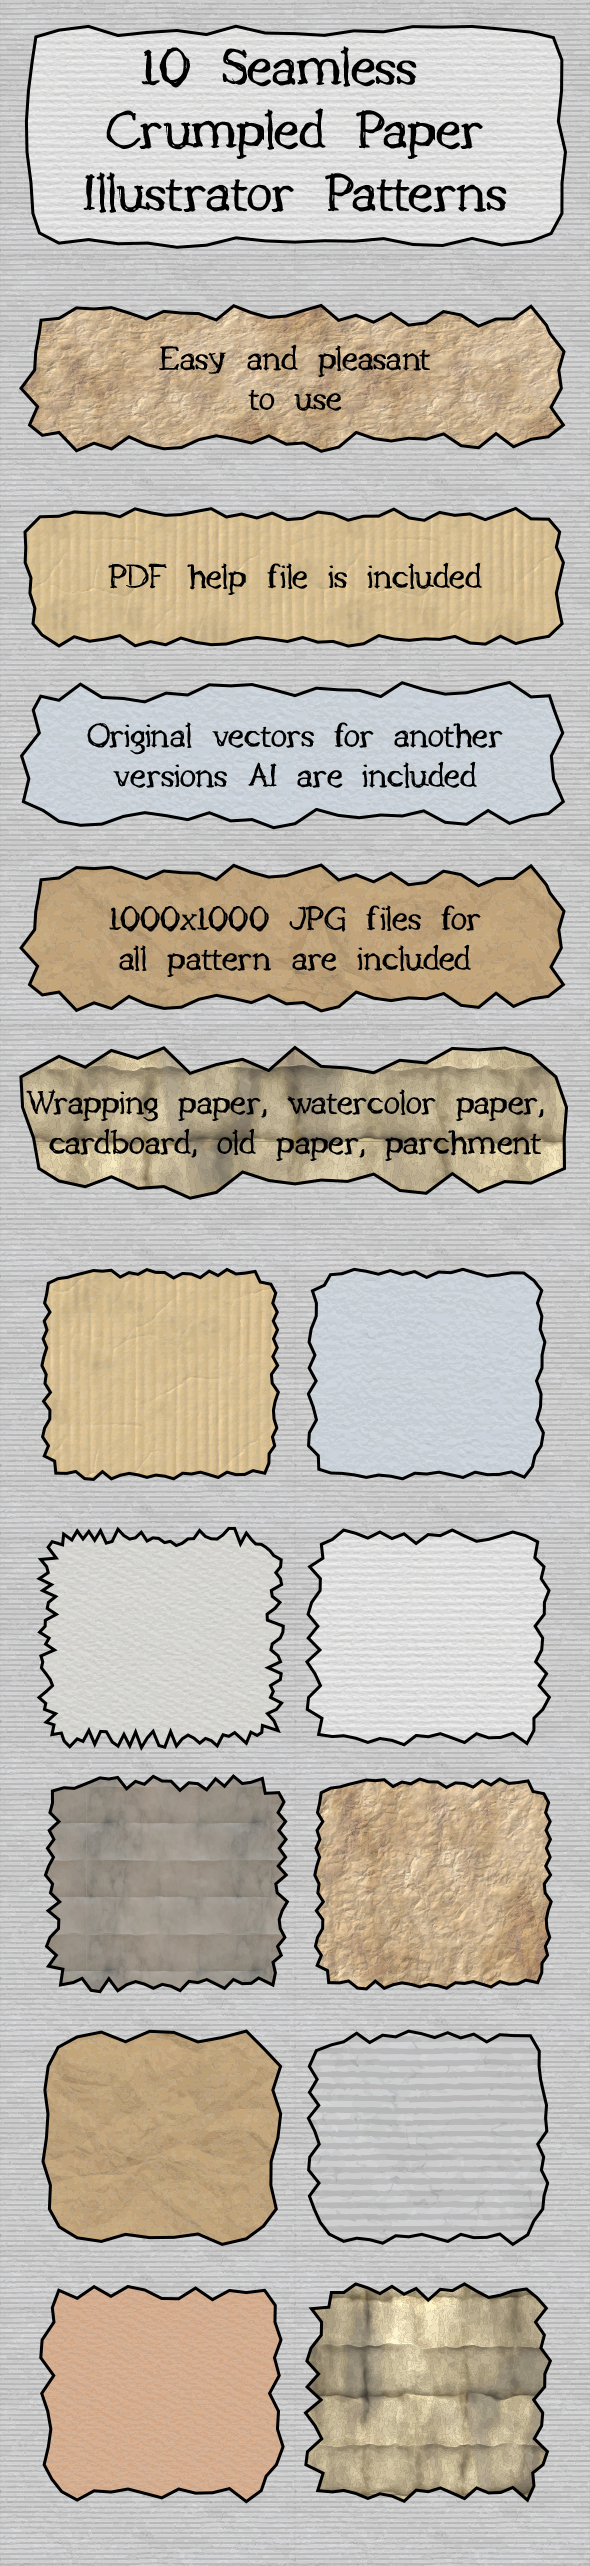 10 Crumpled Shabby Paper and Cardboard Seamless Adobe Illustrator Patterns - Miscellaneous Textures / Fills / Patterns